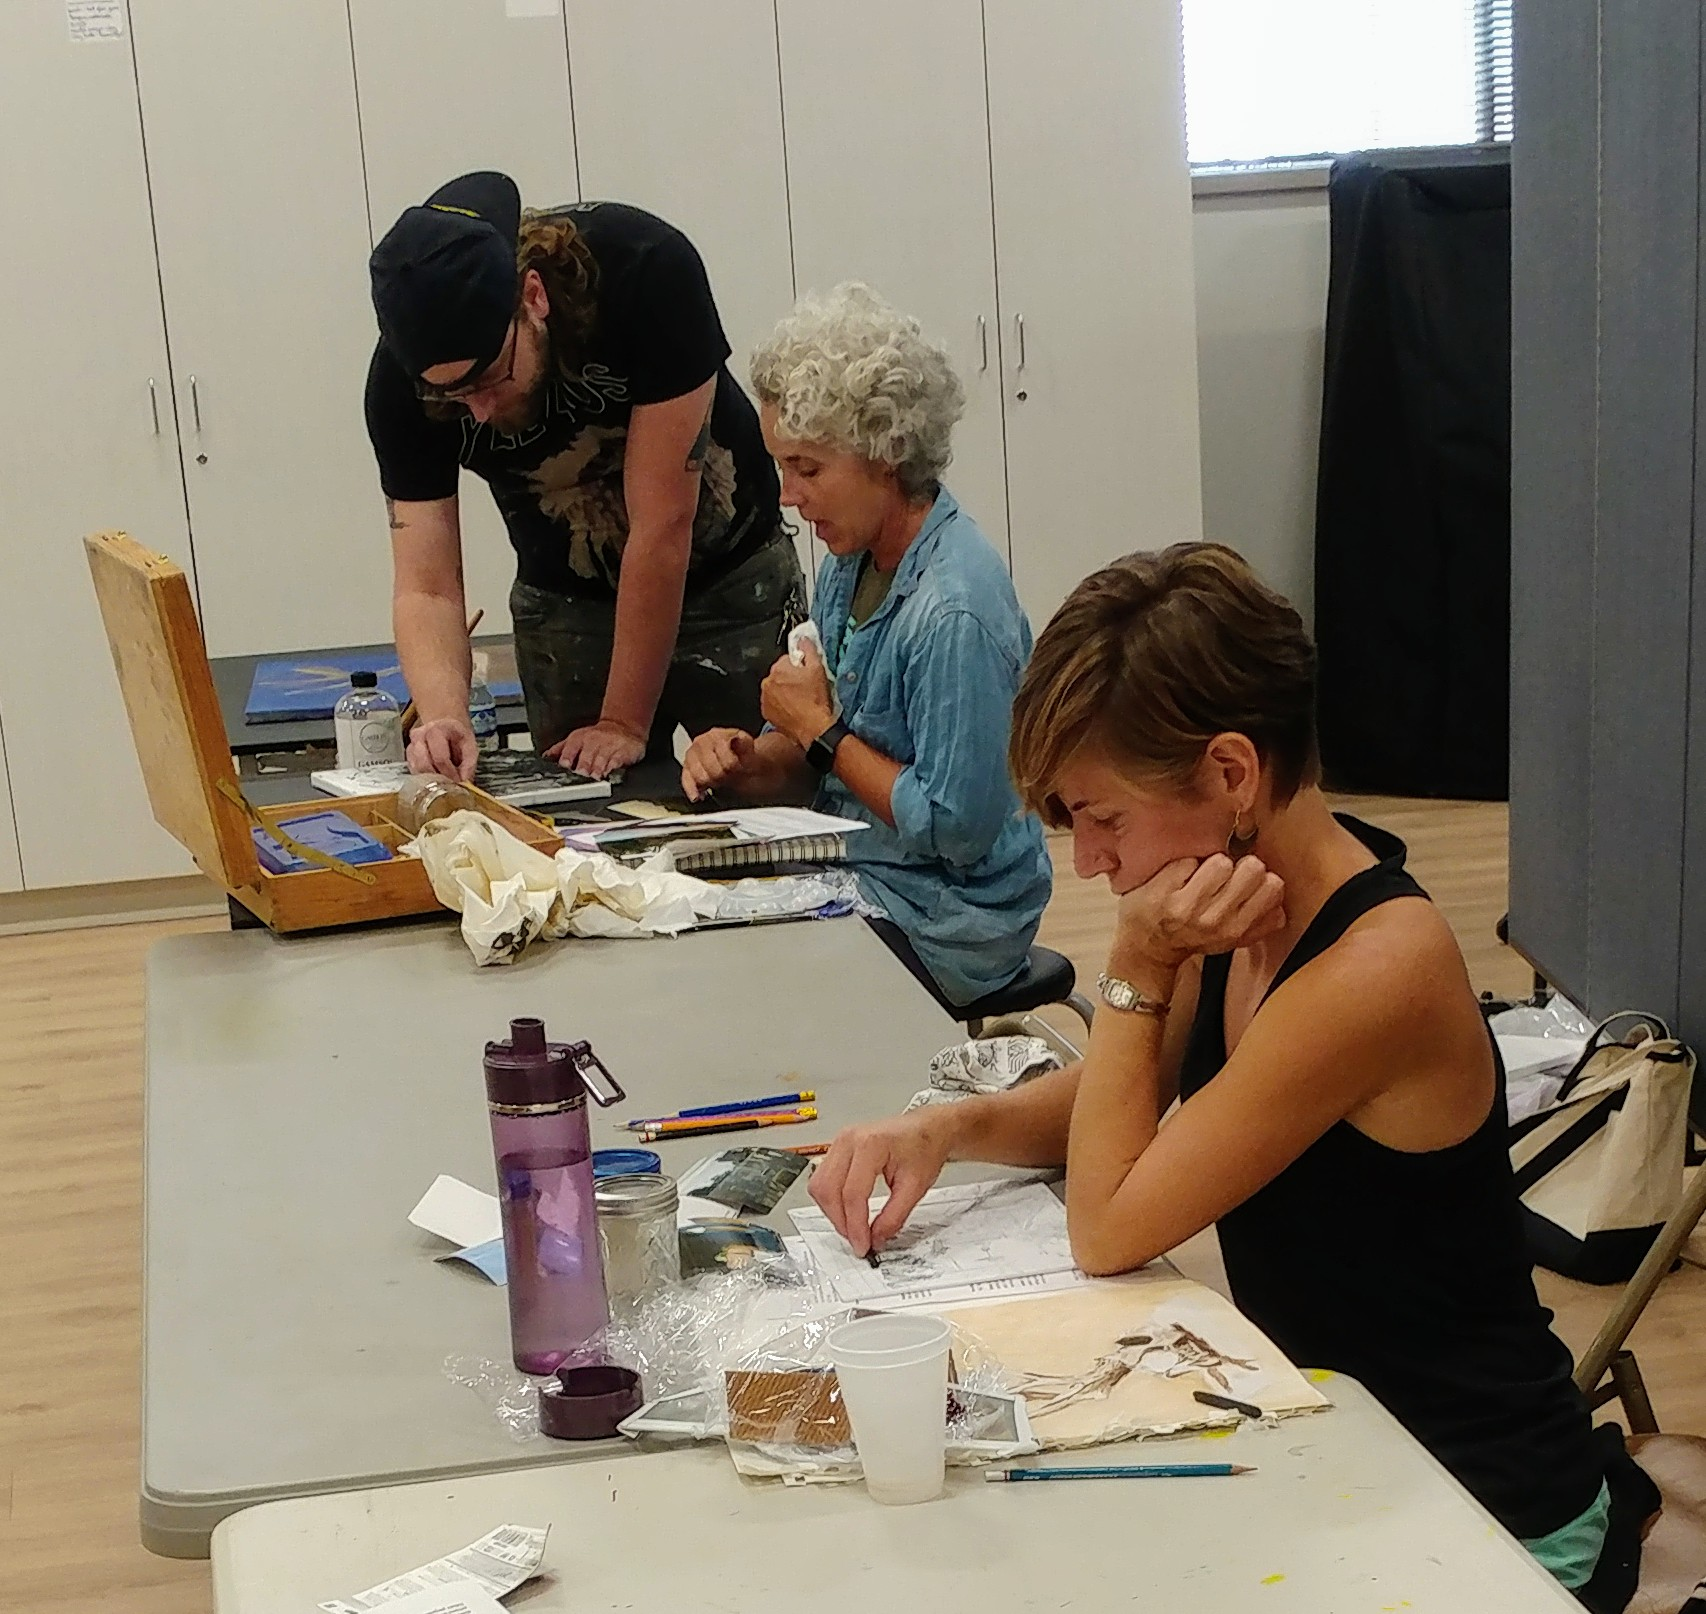 join a class - The Hutchinson Art Center offers a variety of classes to artists of all ages and skill levels. We are making an effort to expand on our available workshops and camps over the next year to provide more opportunities for you, the members of our art community.